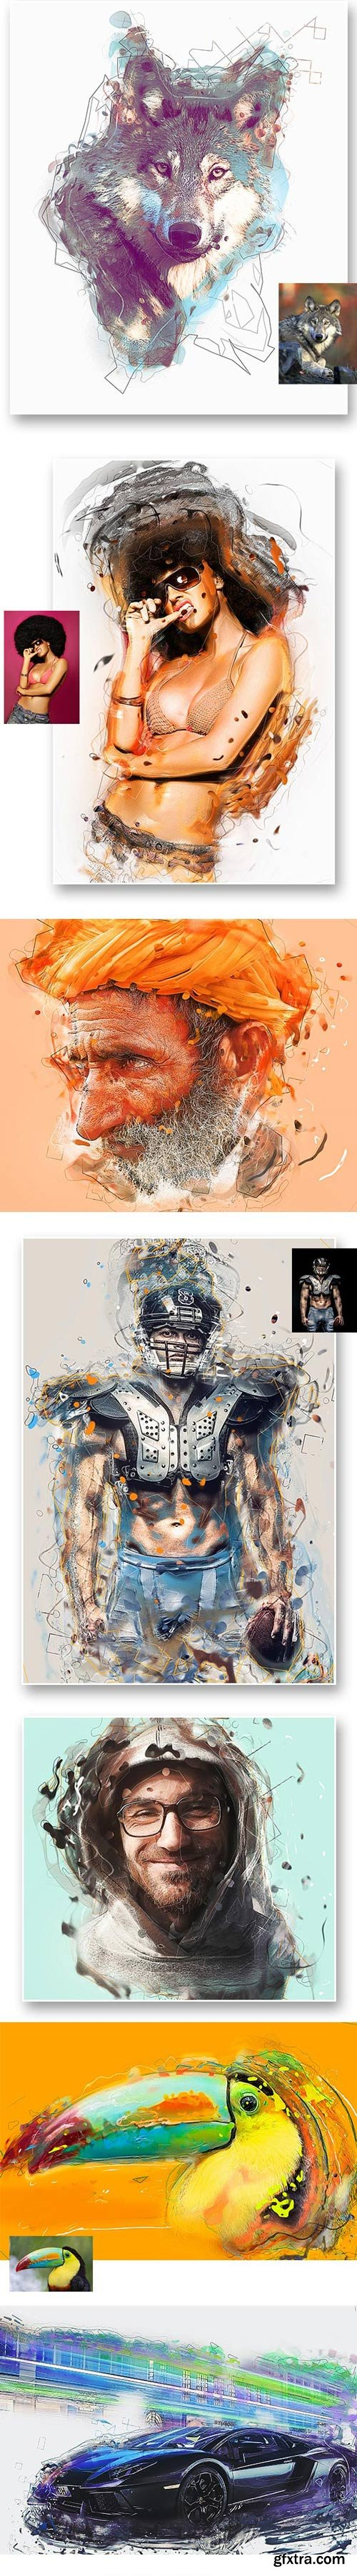 GraphicRiver - Konstruct Photoshop Action - 8599270